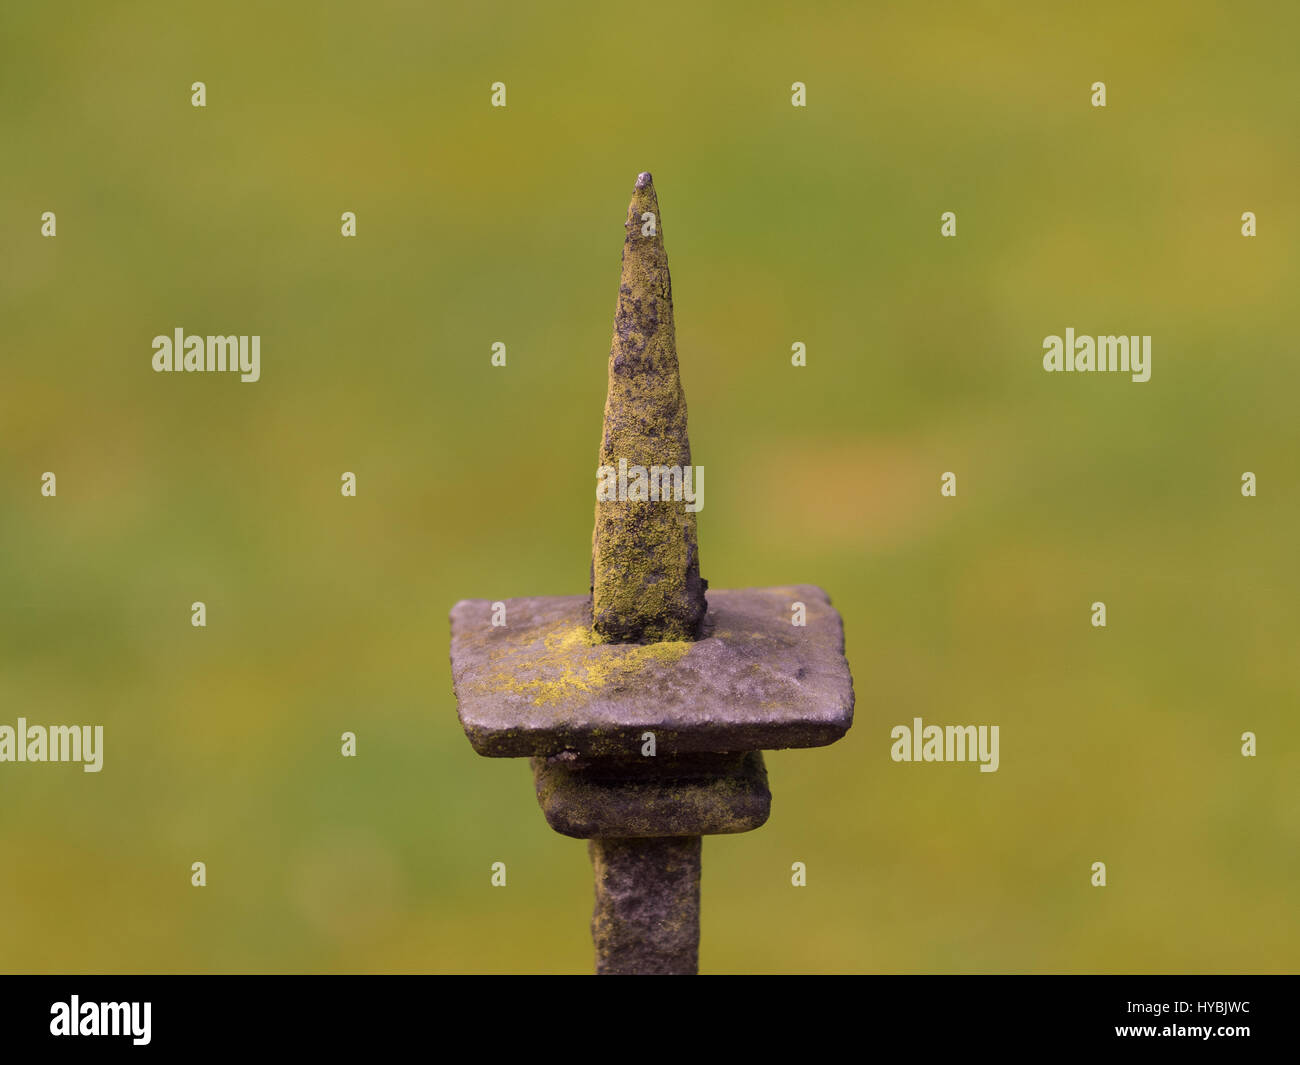 Fence Spike Stock Photos & Fence Spike Stock Images - Alamy